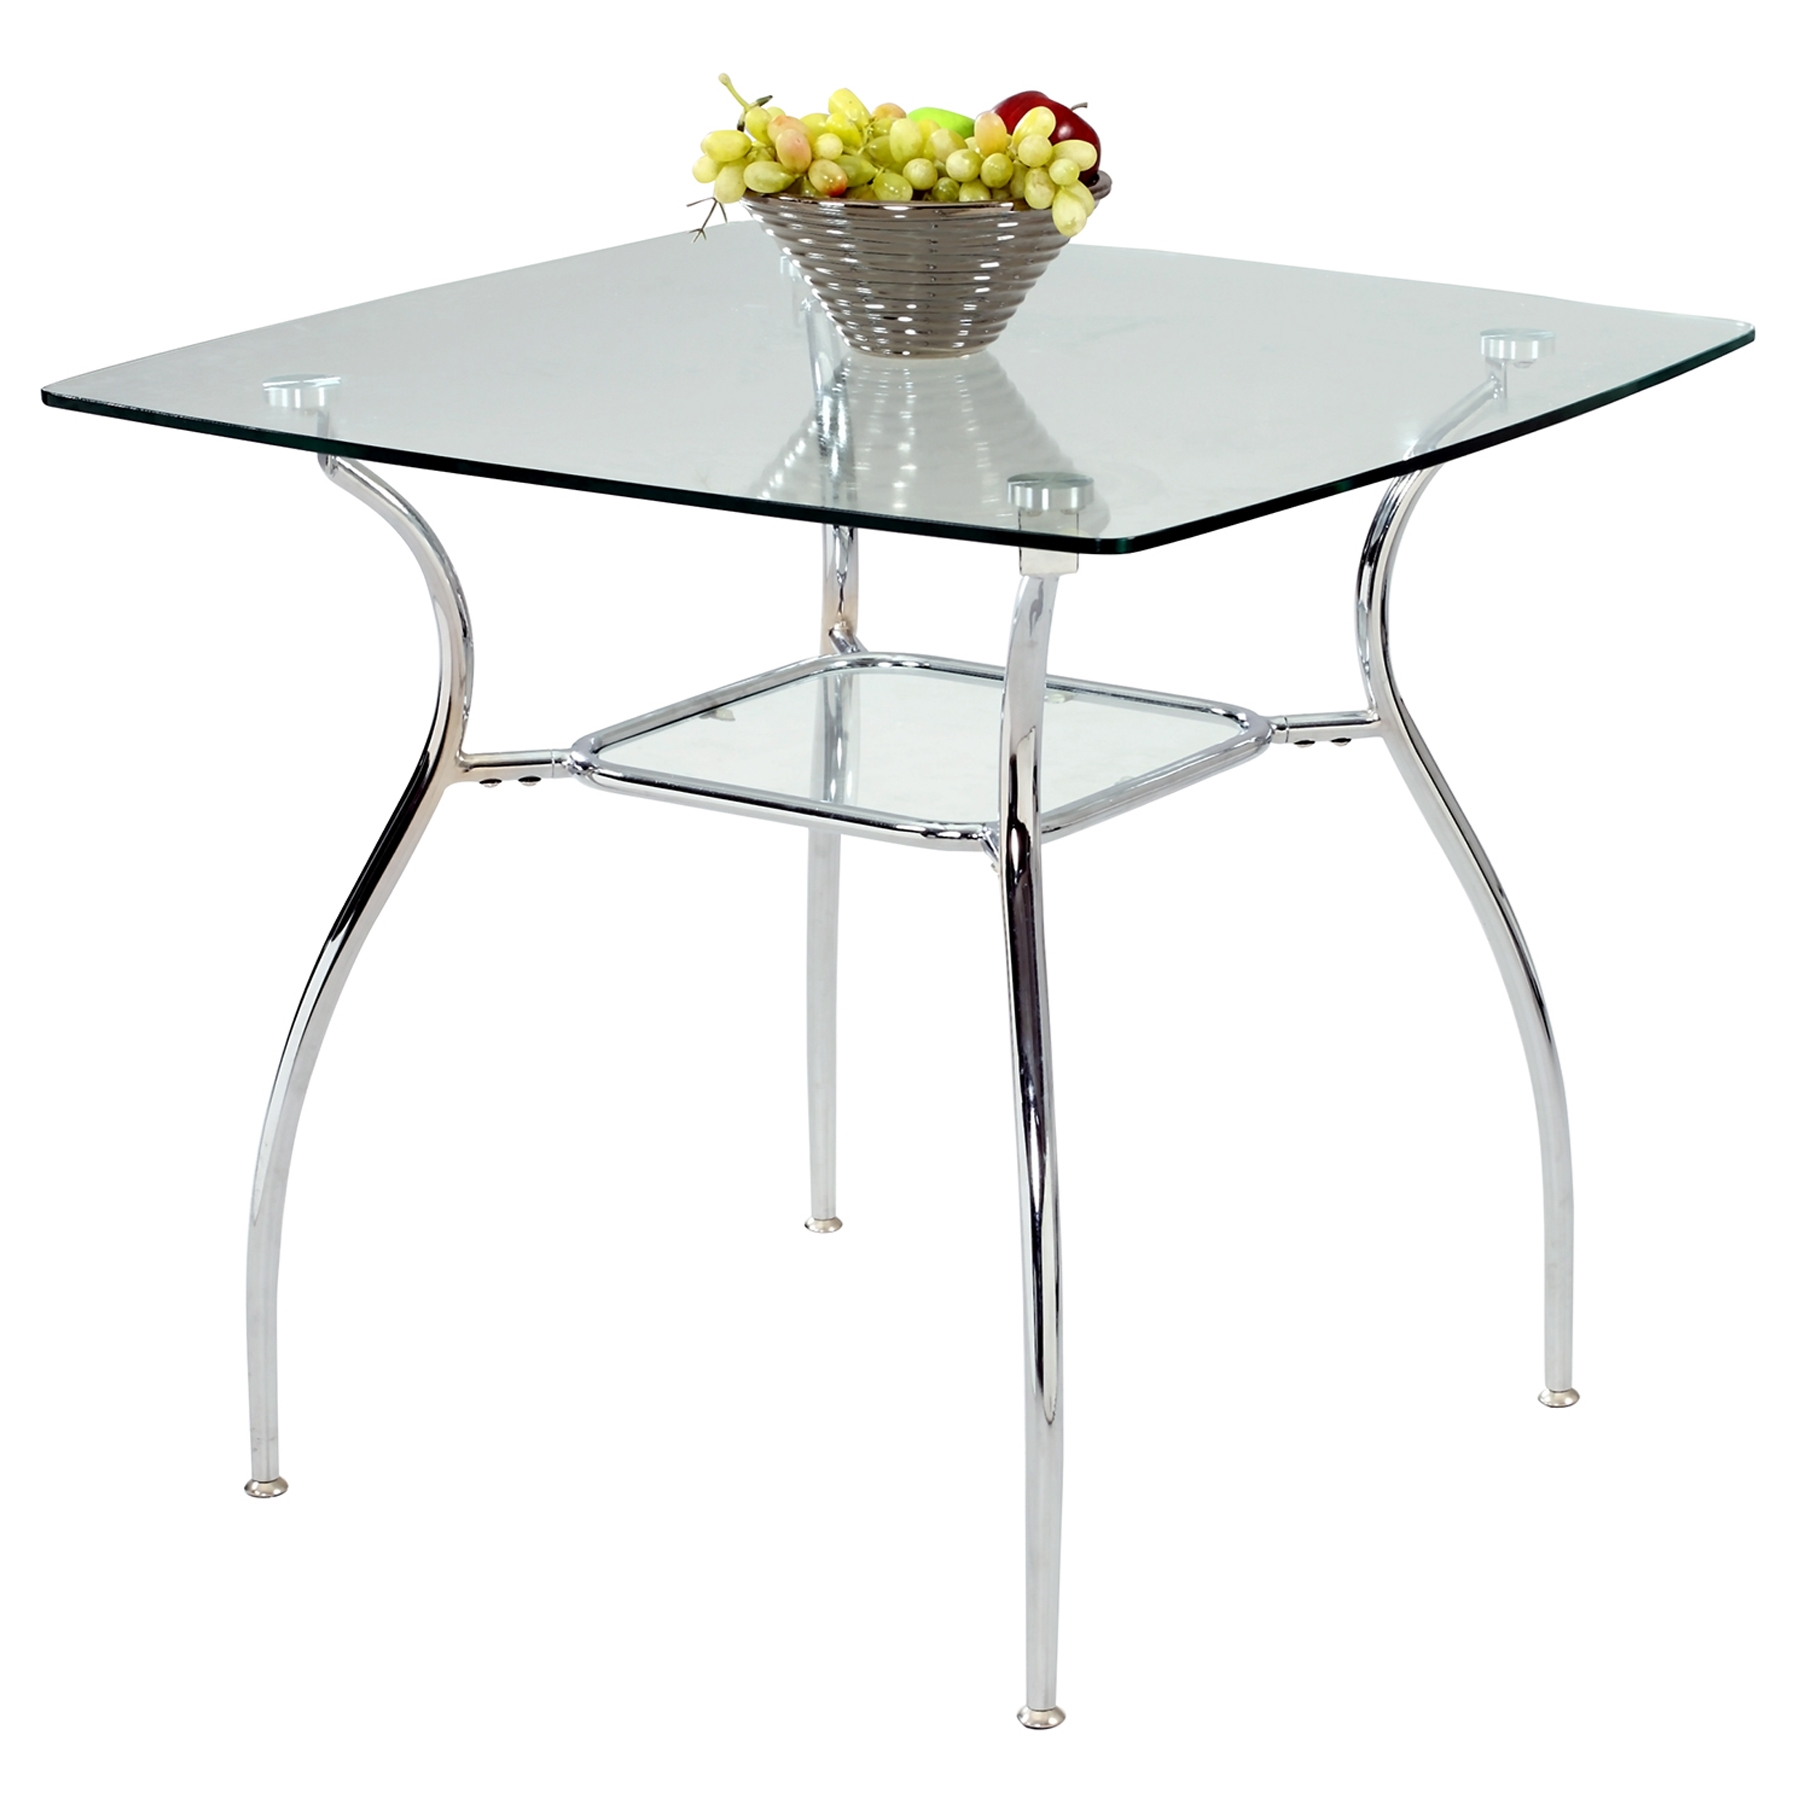 Daisy Square Glass Dining Table - CI-DAISY-DT